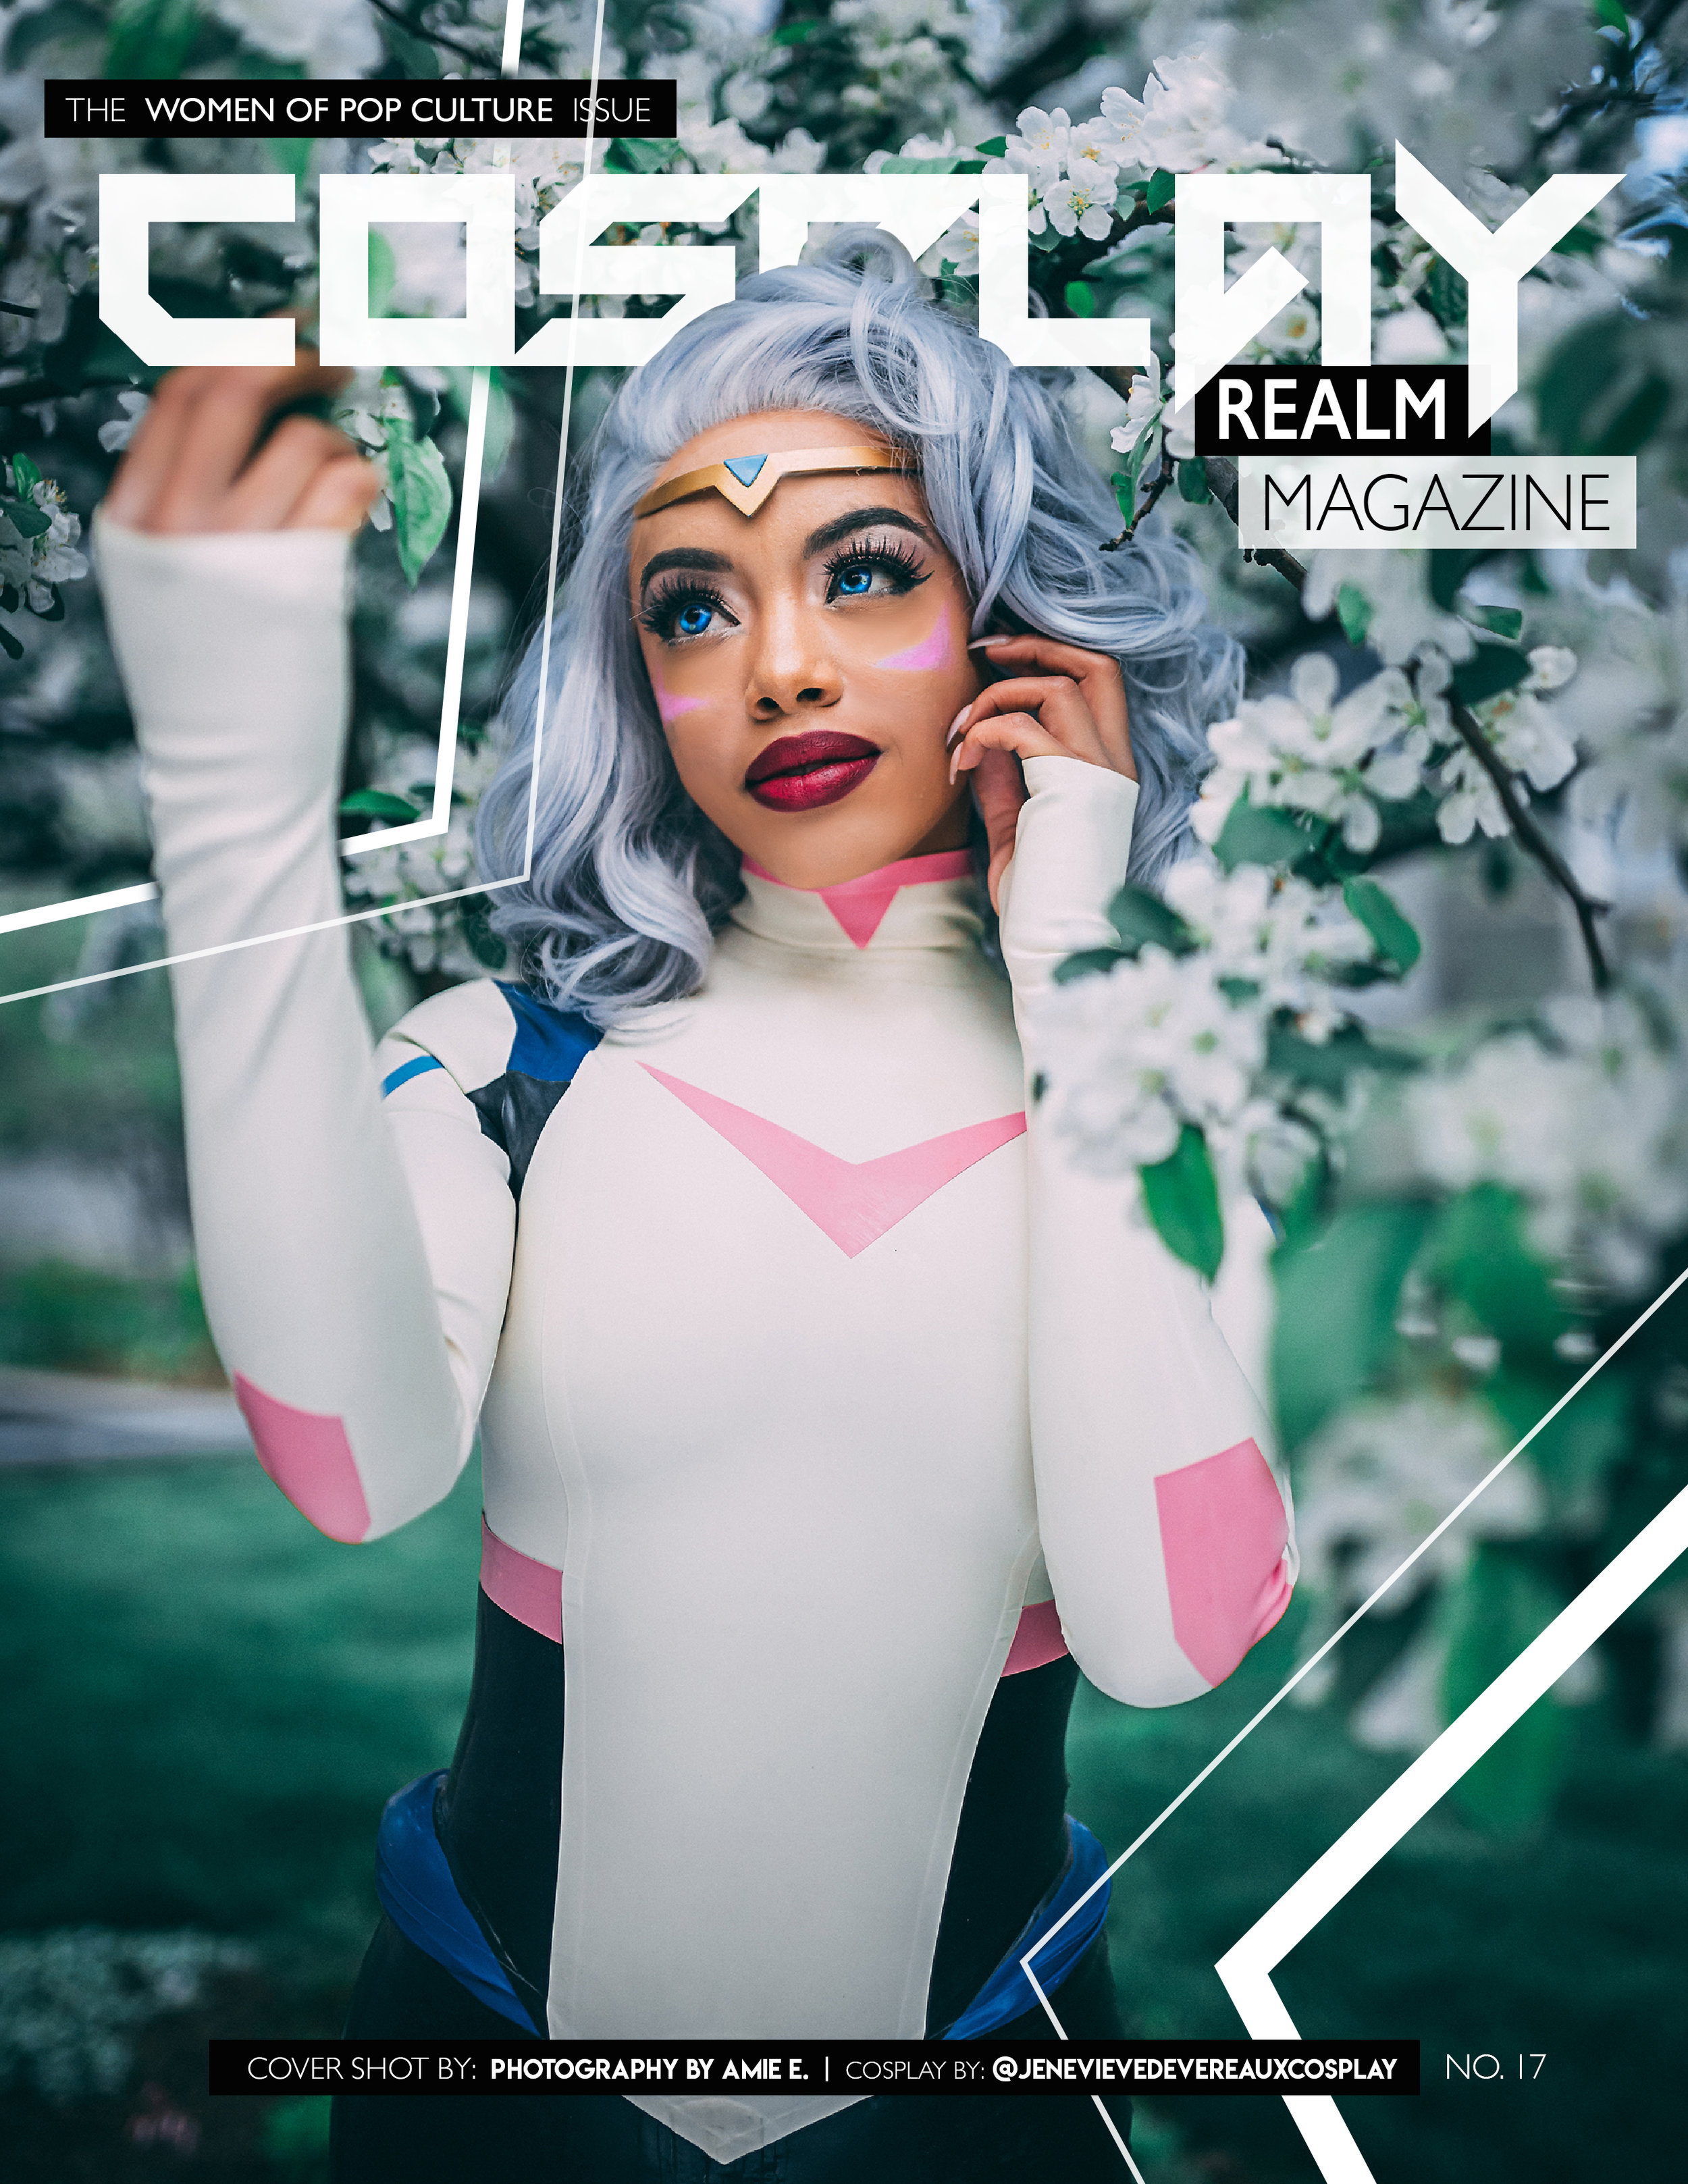 CRM No. 17 - The Women of Pop Culture Issue